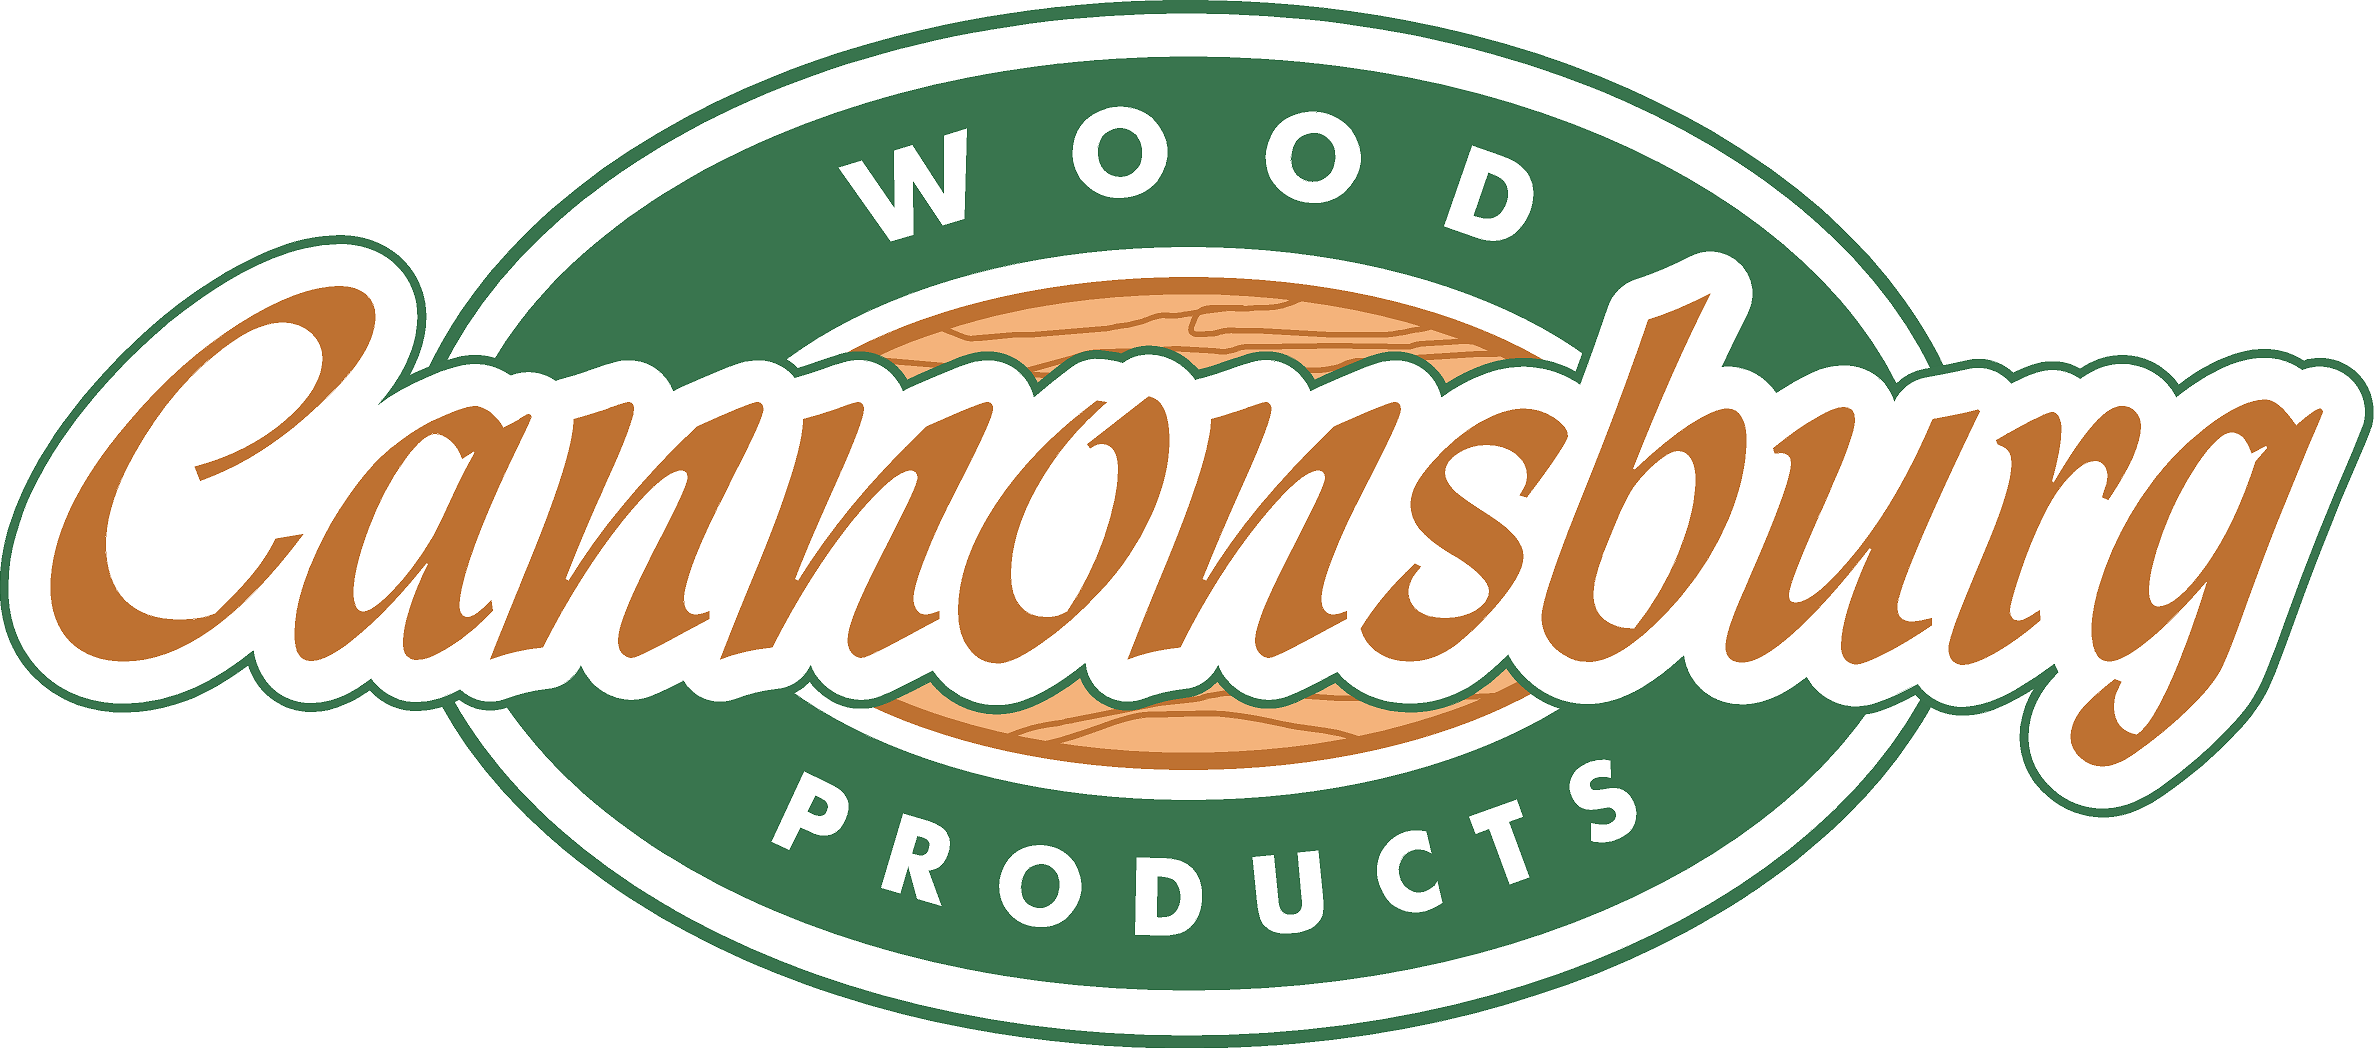 Cannonsburg Wood Products